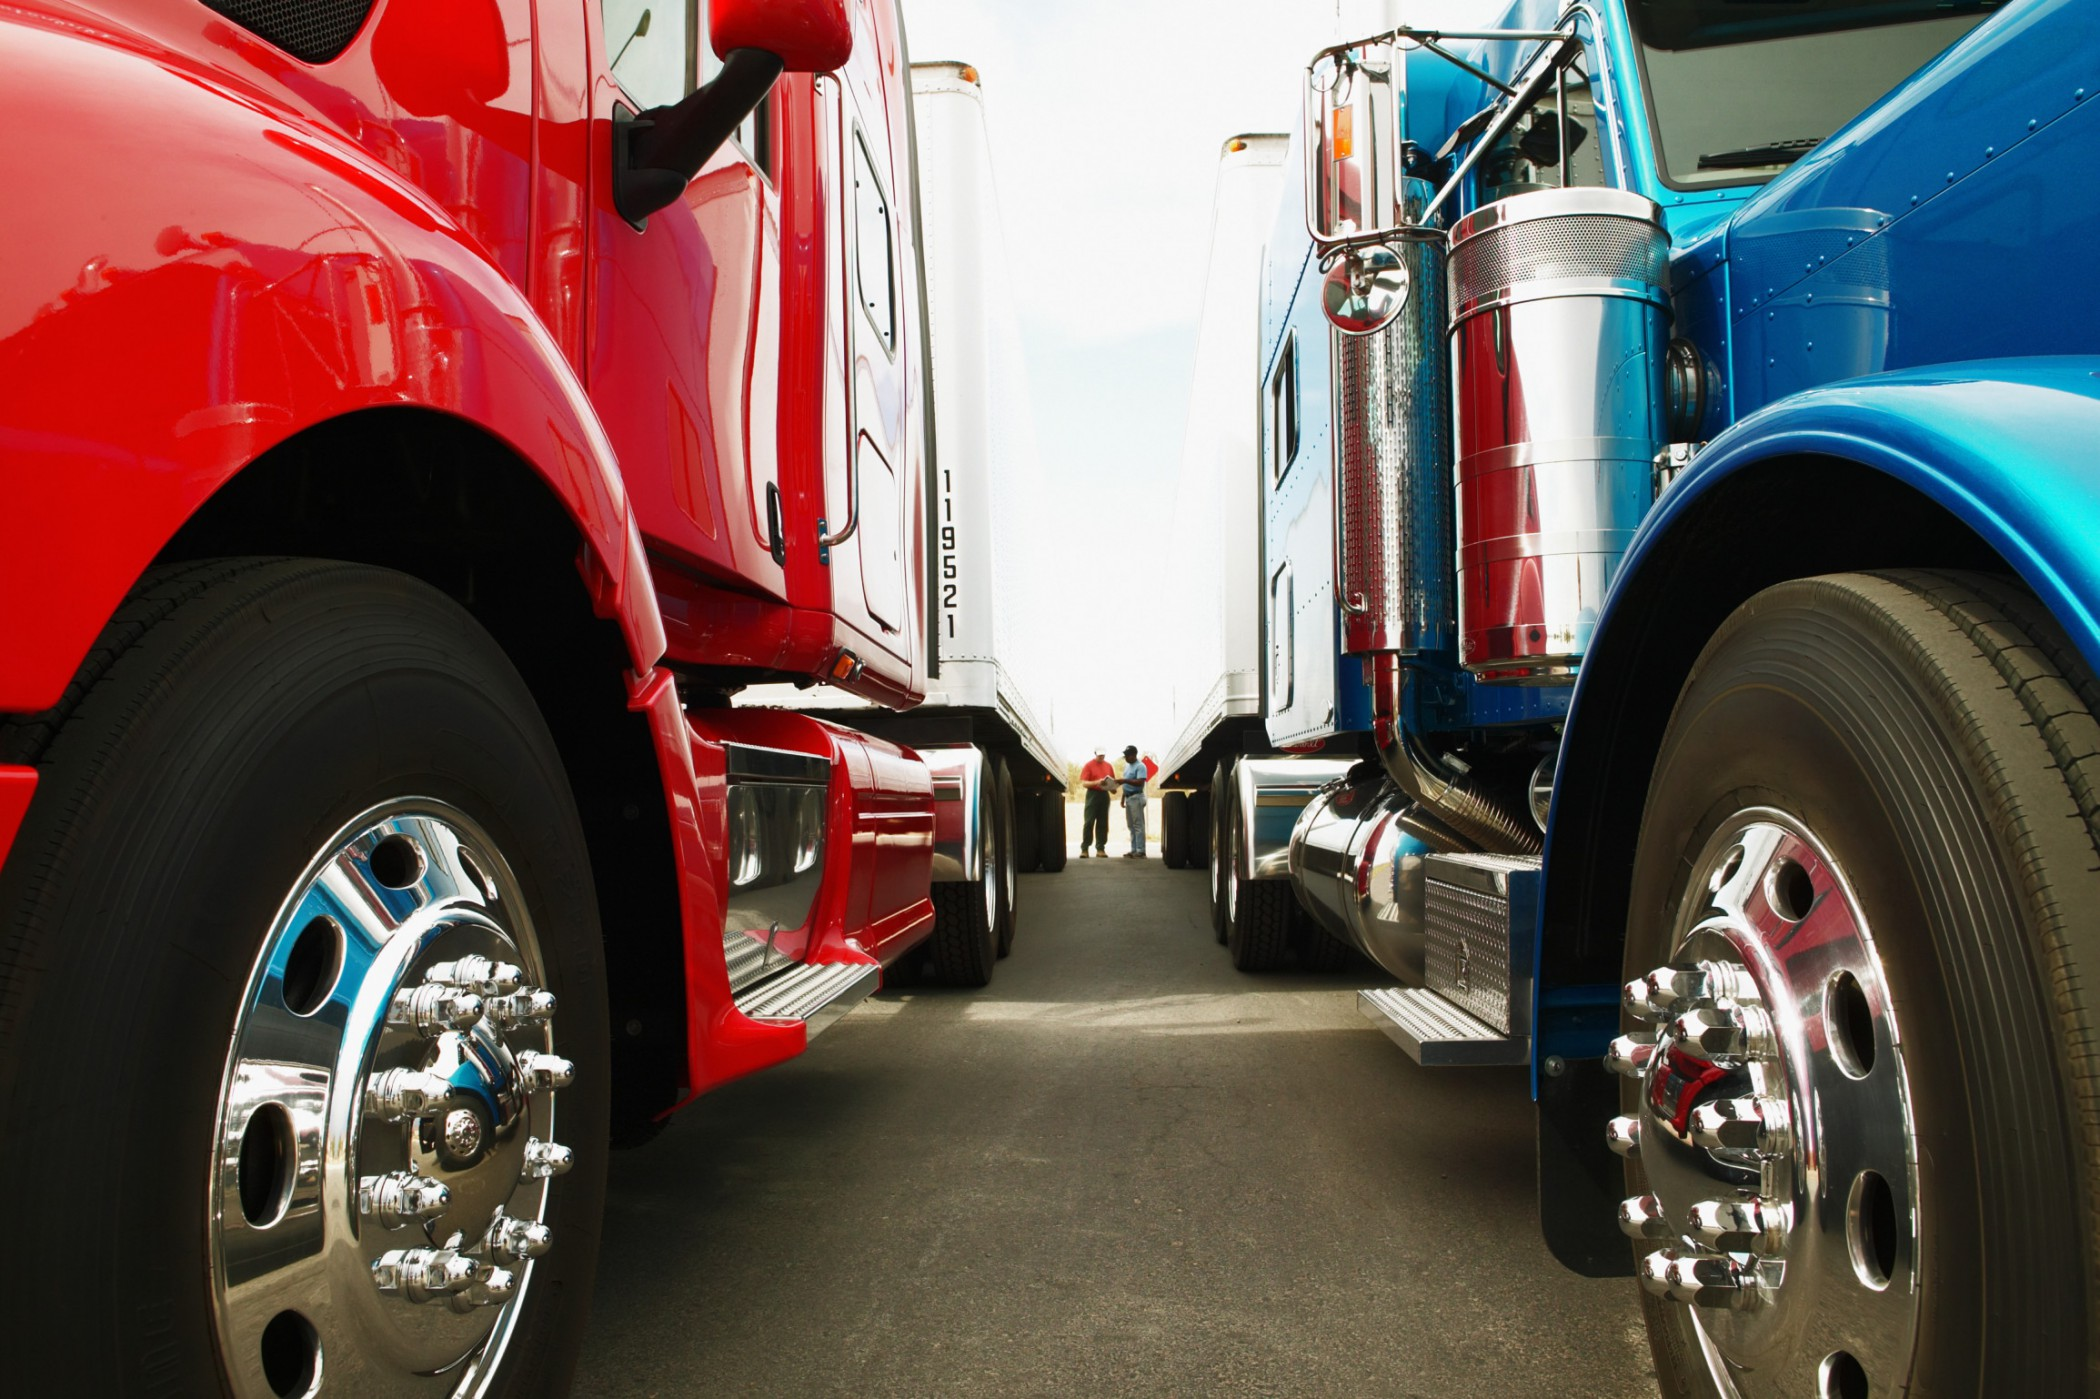 Top 6 Issues that Will Impact the Trucking Industry in 2016